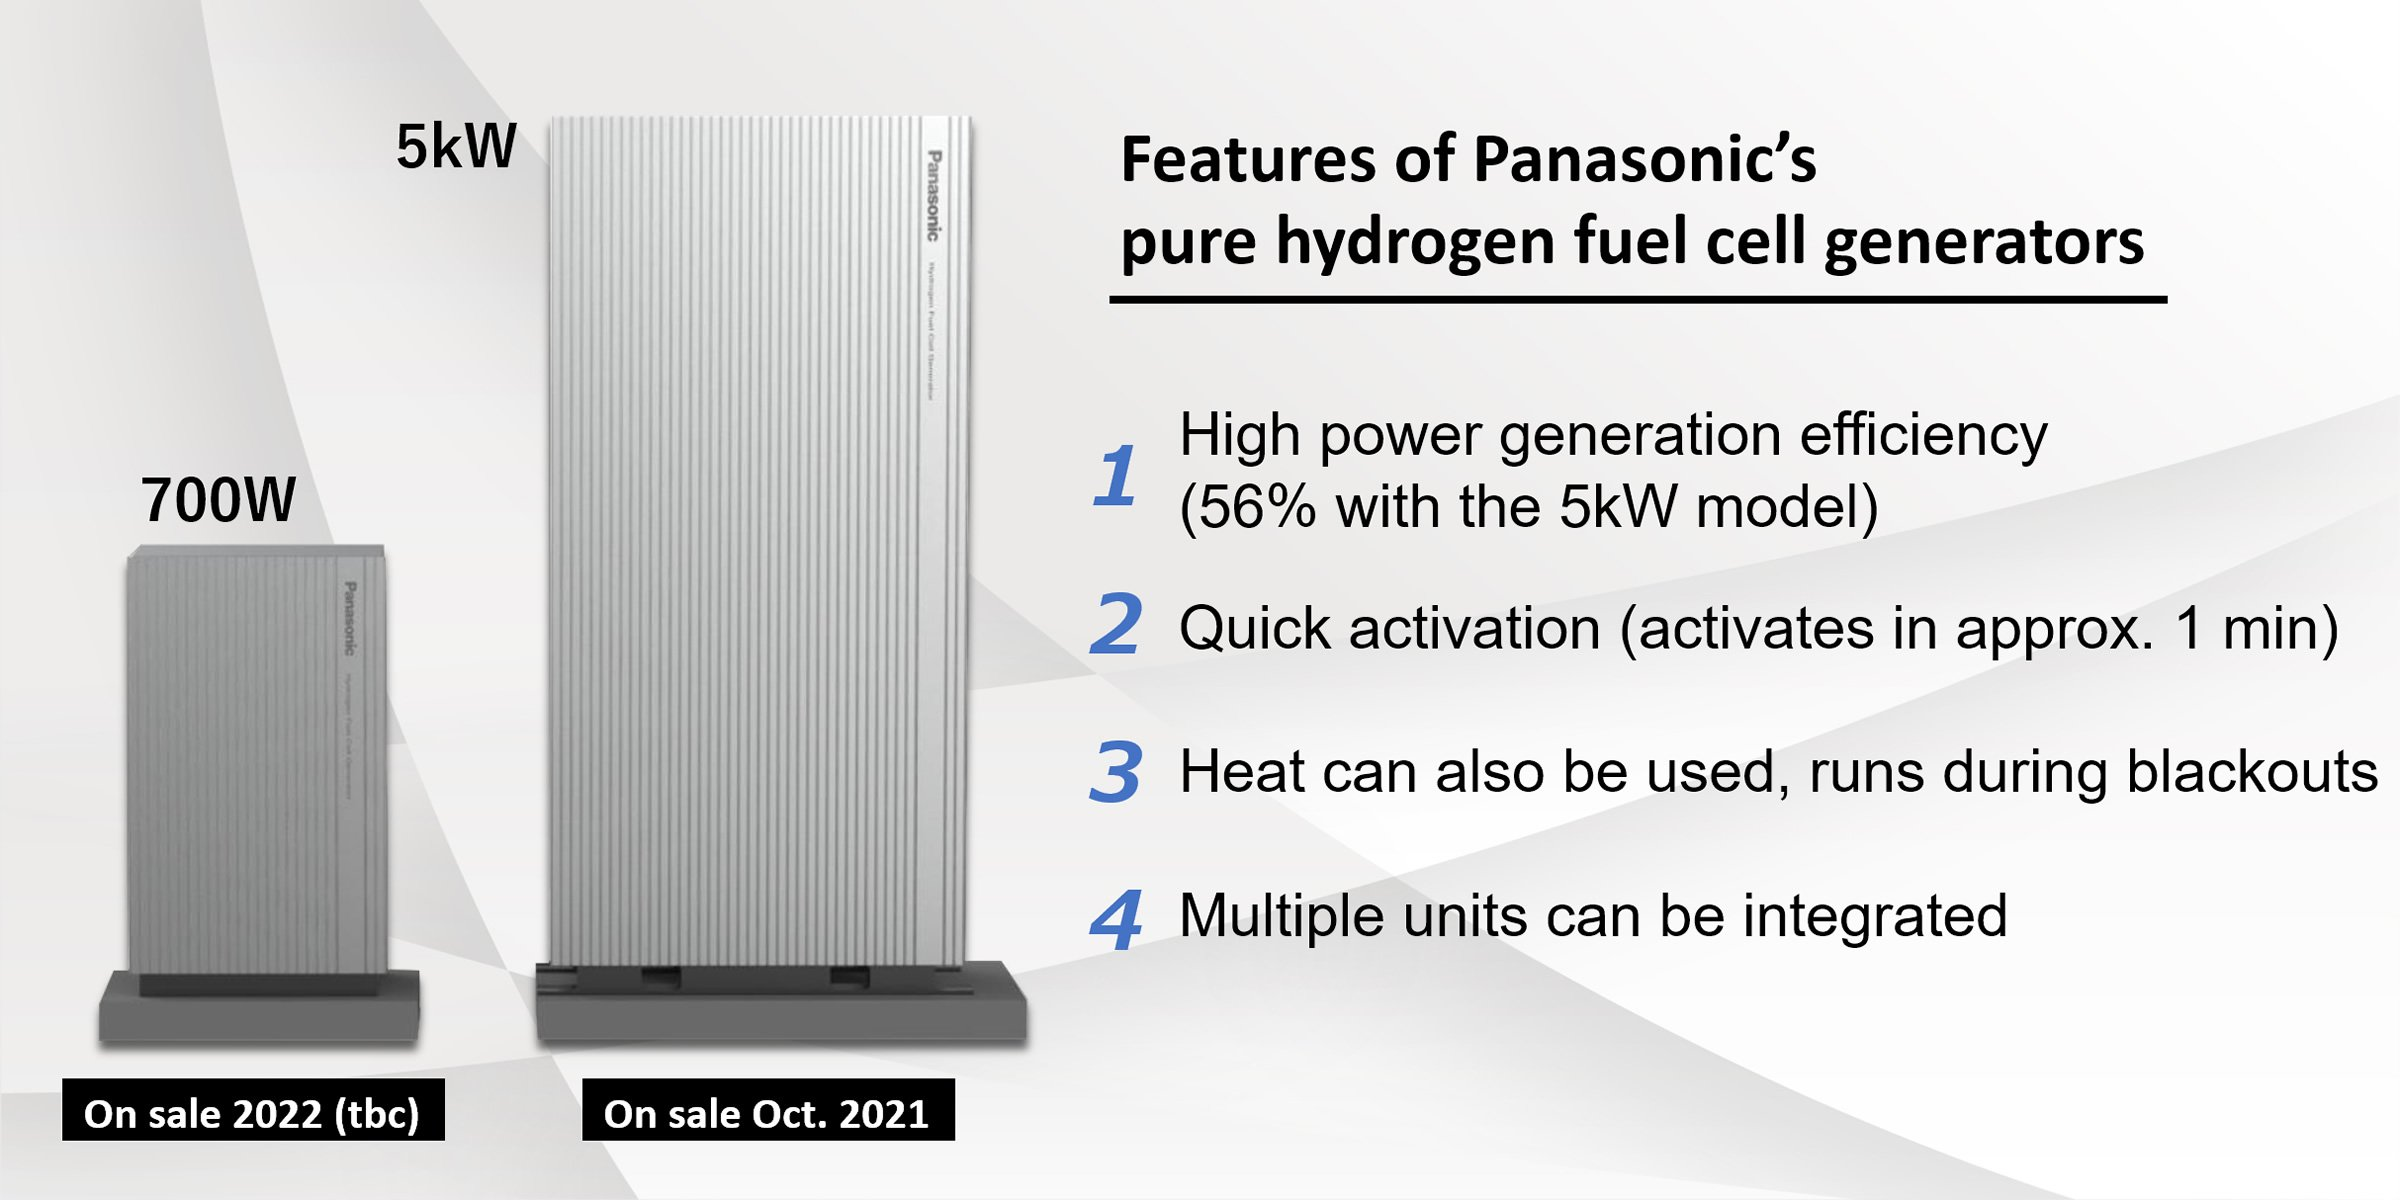 Features of Panasonic's pure hydrogen fuel cell generators